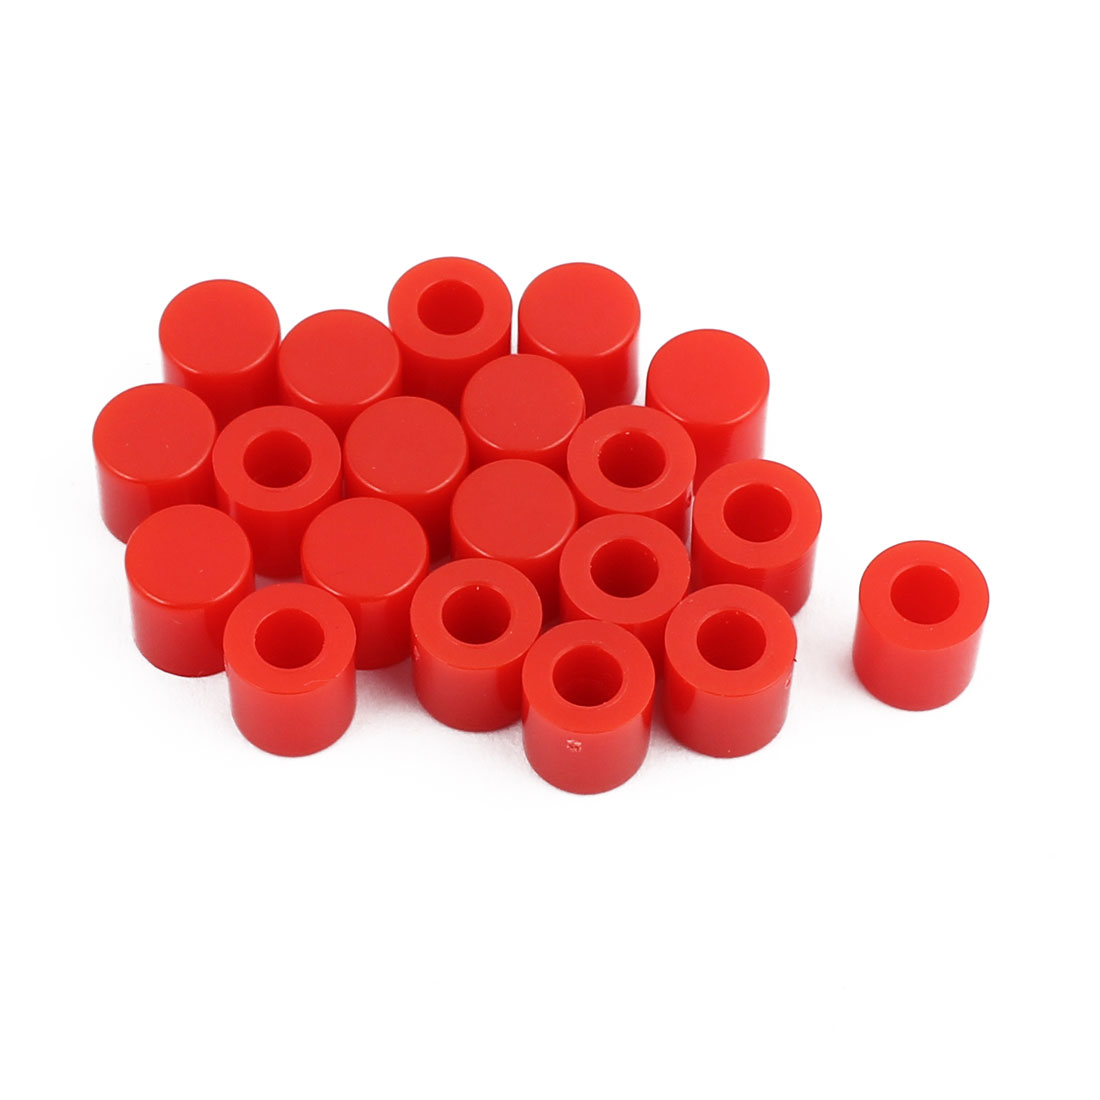 20Pcs Round Shaped Tactile Button Caps Covers f 6x6mm Tact Switch